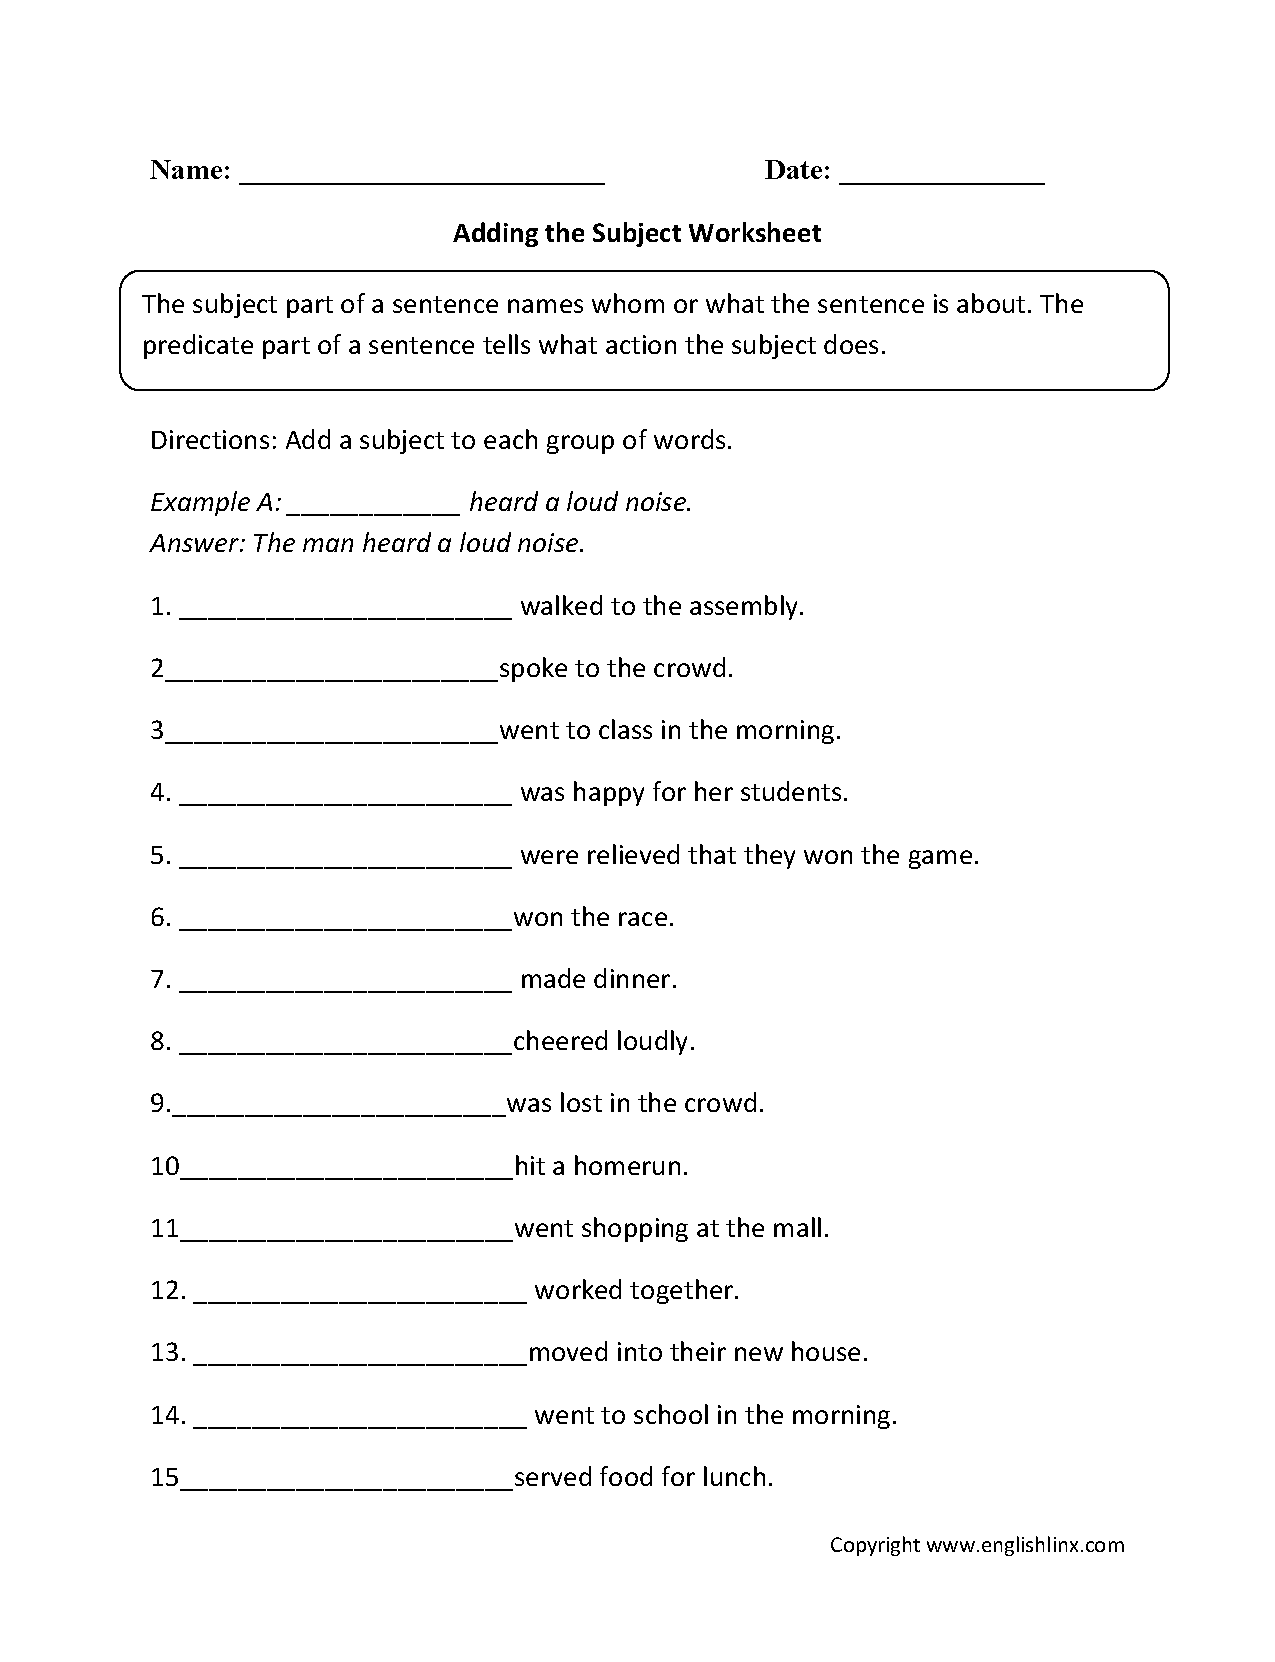 worksheet Compound Subjects And Predicates Worksheets compound subject and predicate worksheets abitlikethis englishlinx com worksheets